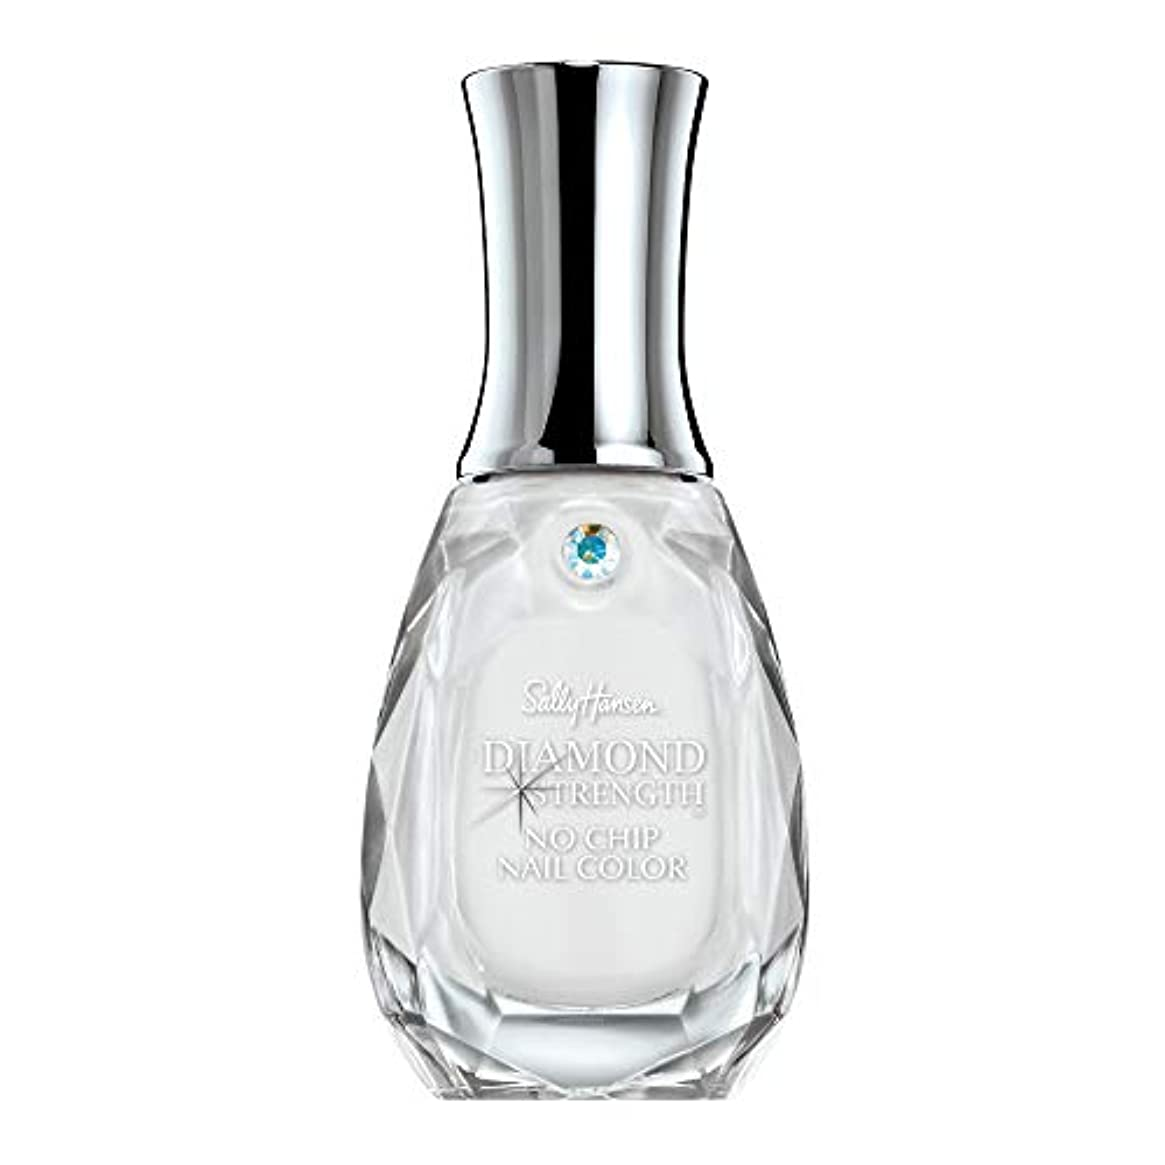 SALLY HANSEN DIAMOND STRENGHT NO CHIP NAIL COLOR #01 FLAWLESS